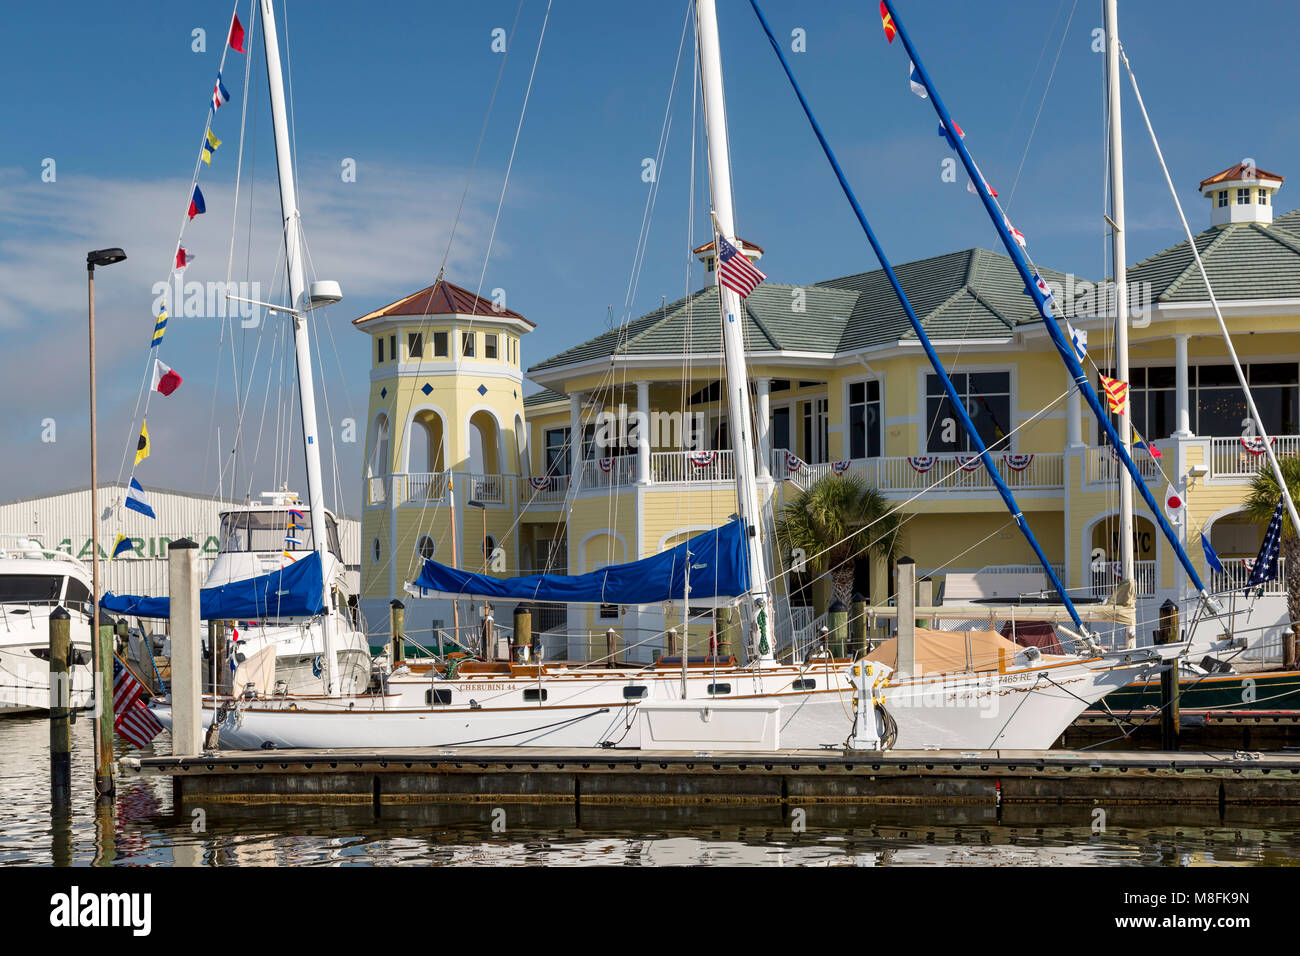 Yachts docked at Naples Sailing and Yacht Club, Naples